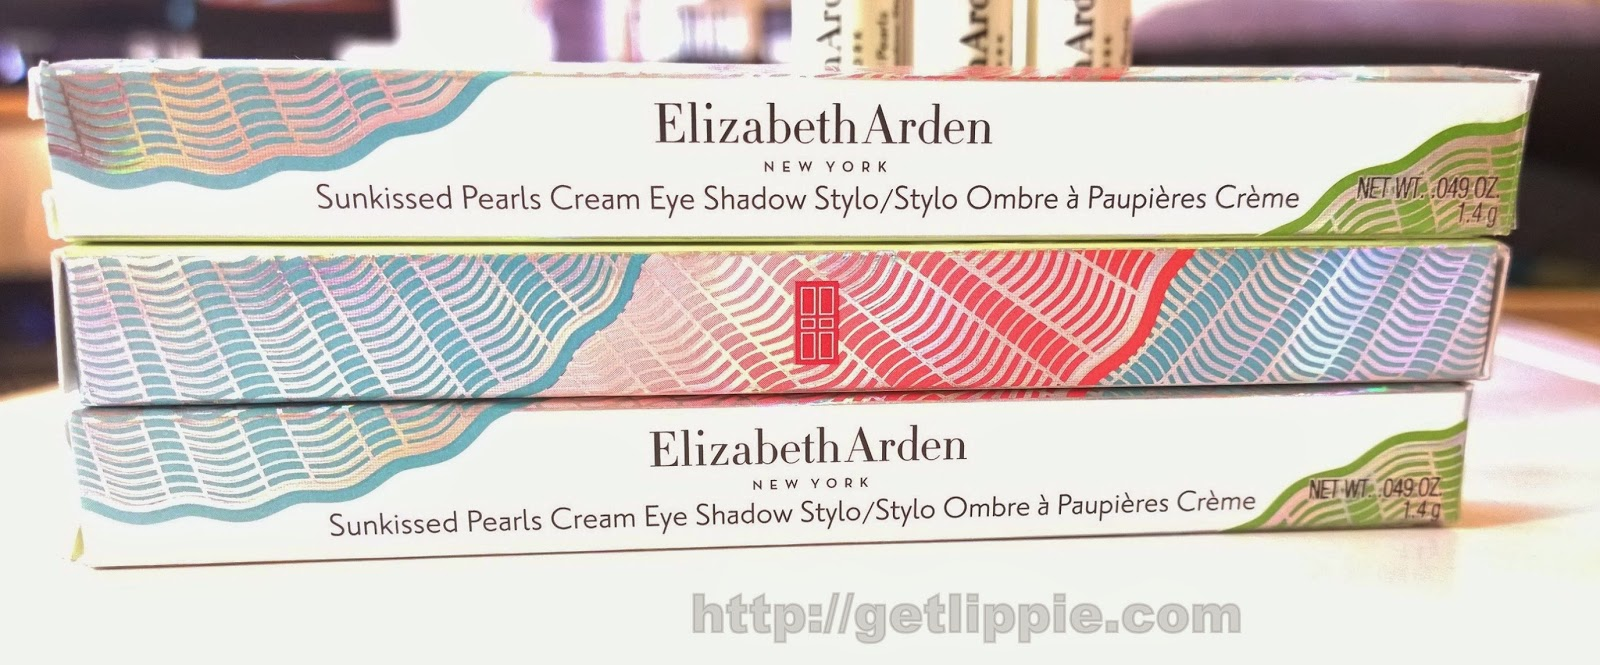 Elizabeth Arden Sunkissed Pearls Cream Eye Shadow Stylos